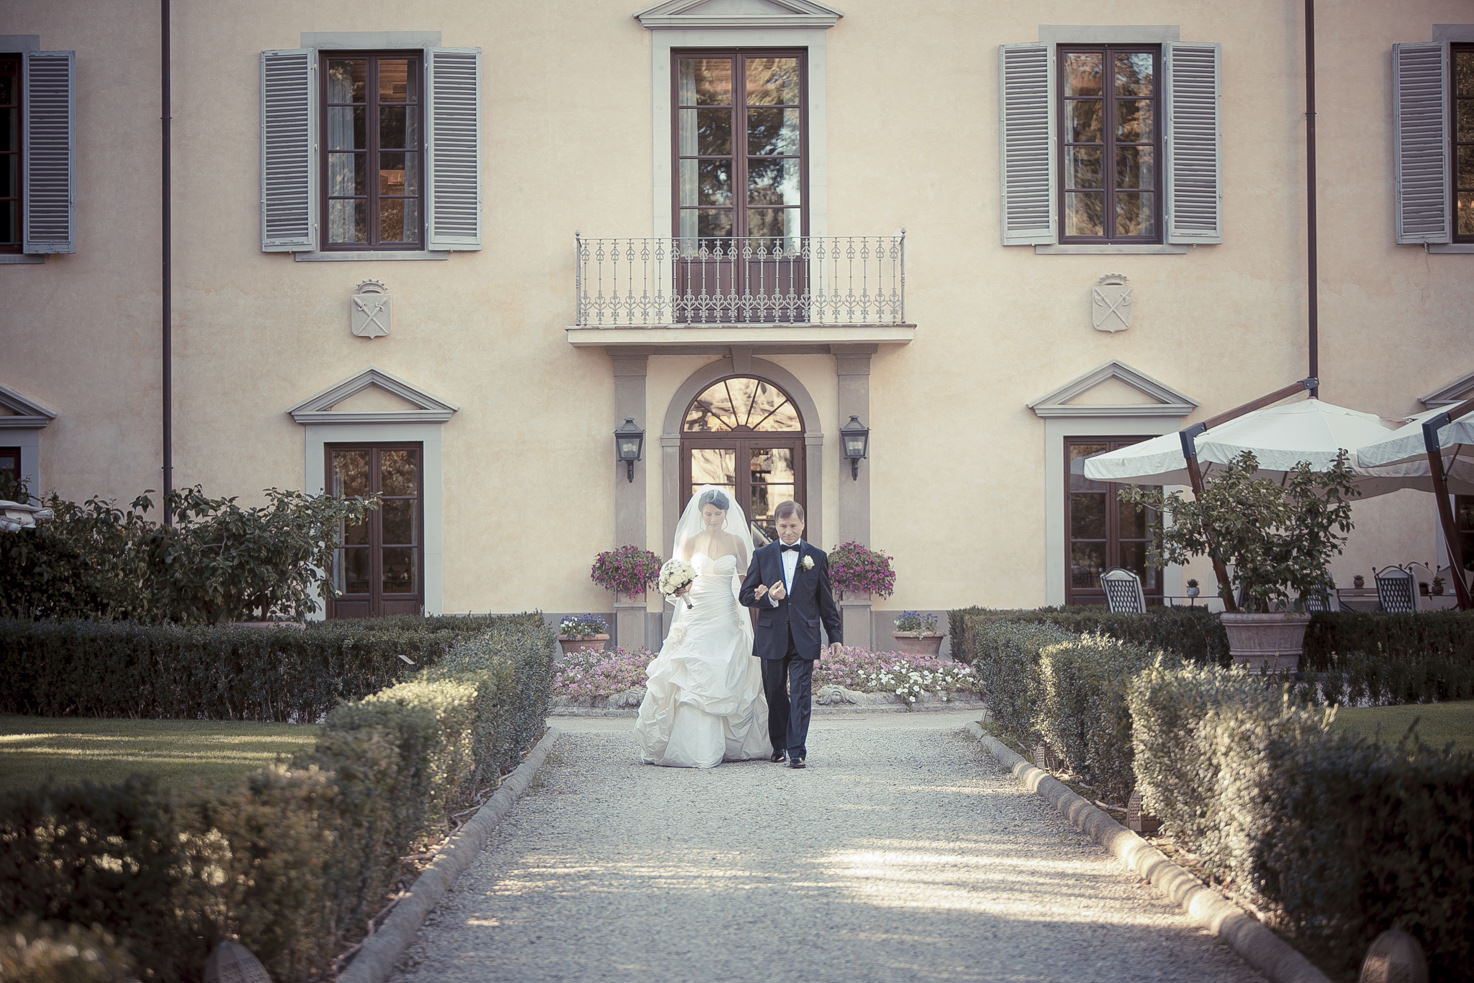 Arrival of the bride at Four Seasons Hotel, Florence